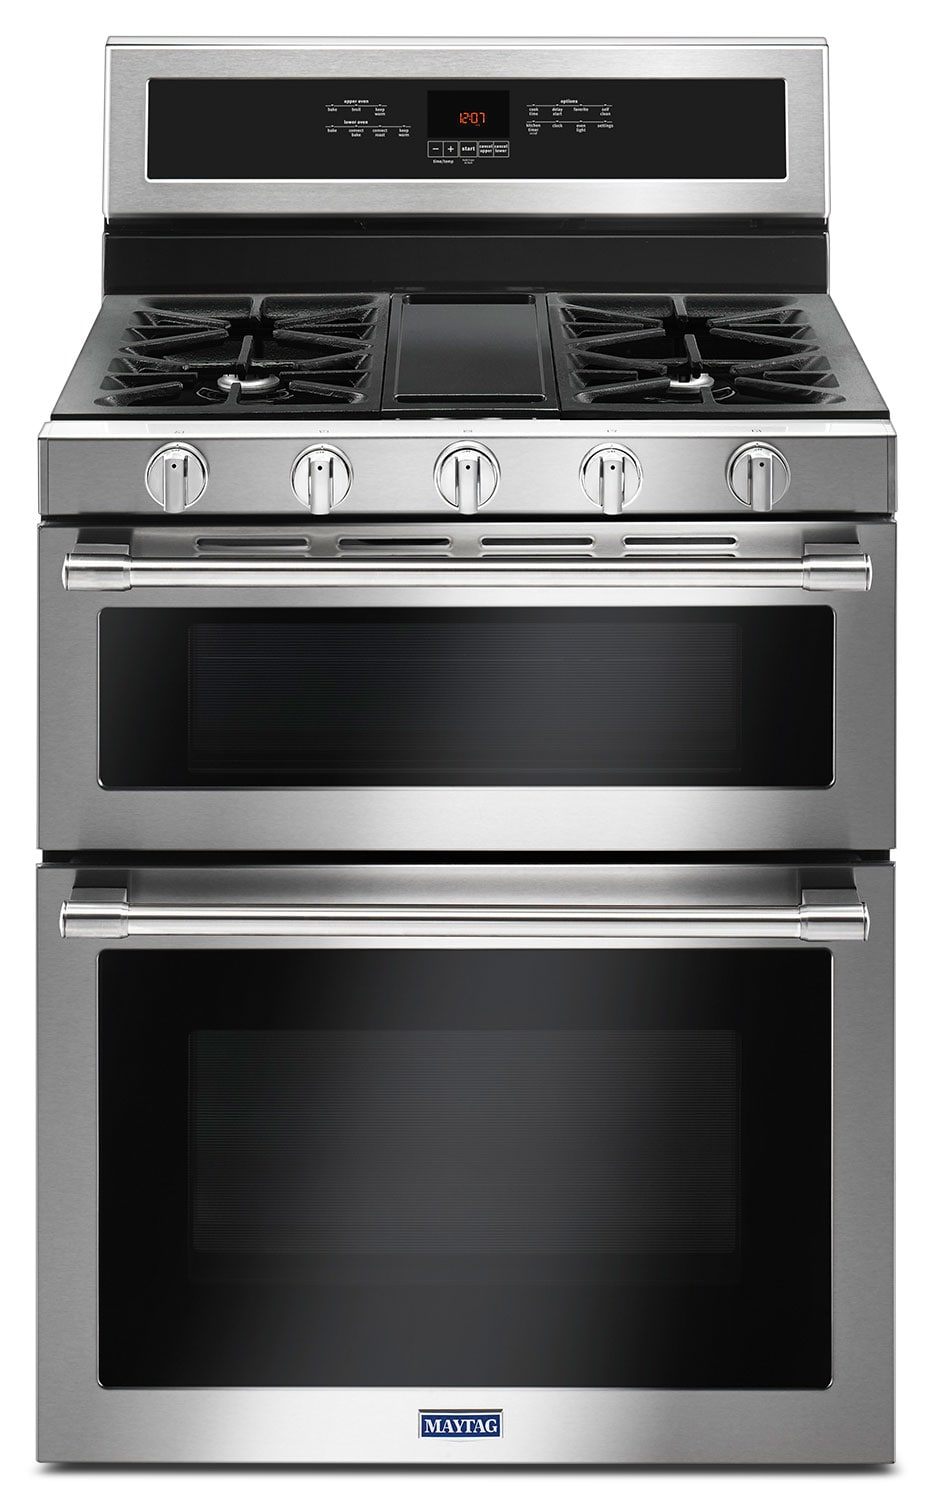 Cooking Products - Maytag 6.0 Cu. Ft. Double Oven Gas Range with Convection – MGT8800FZ